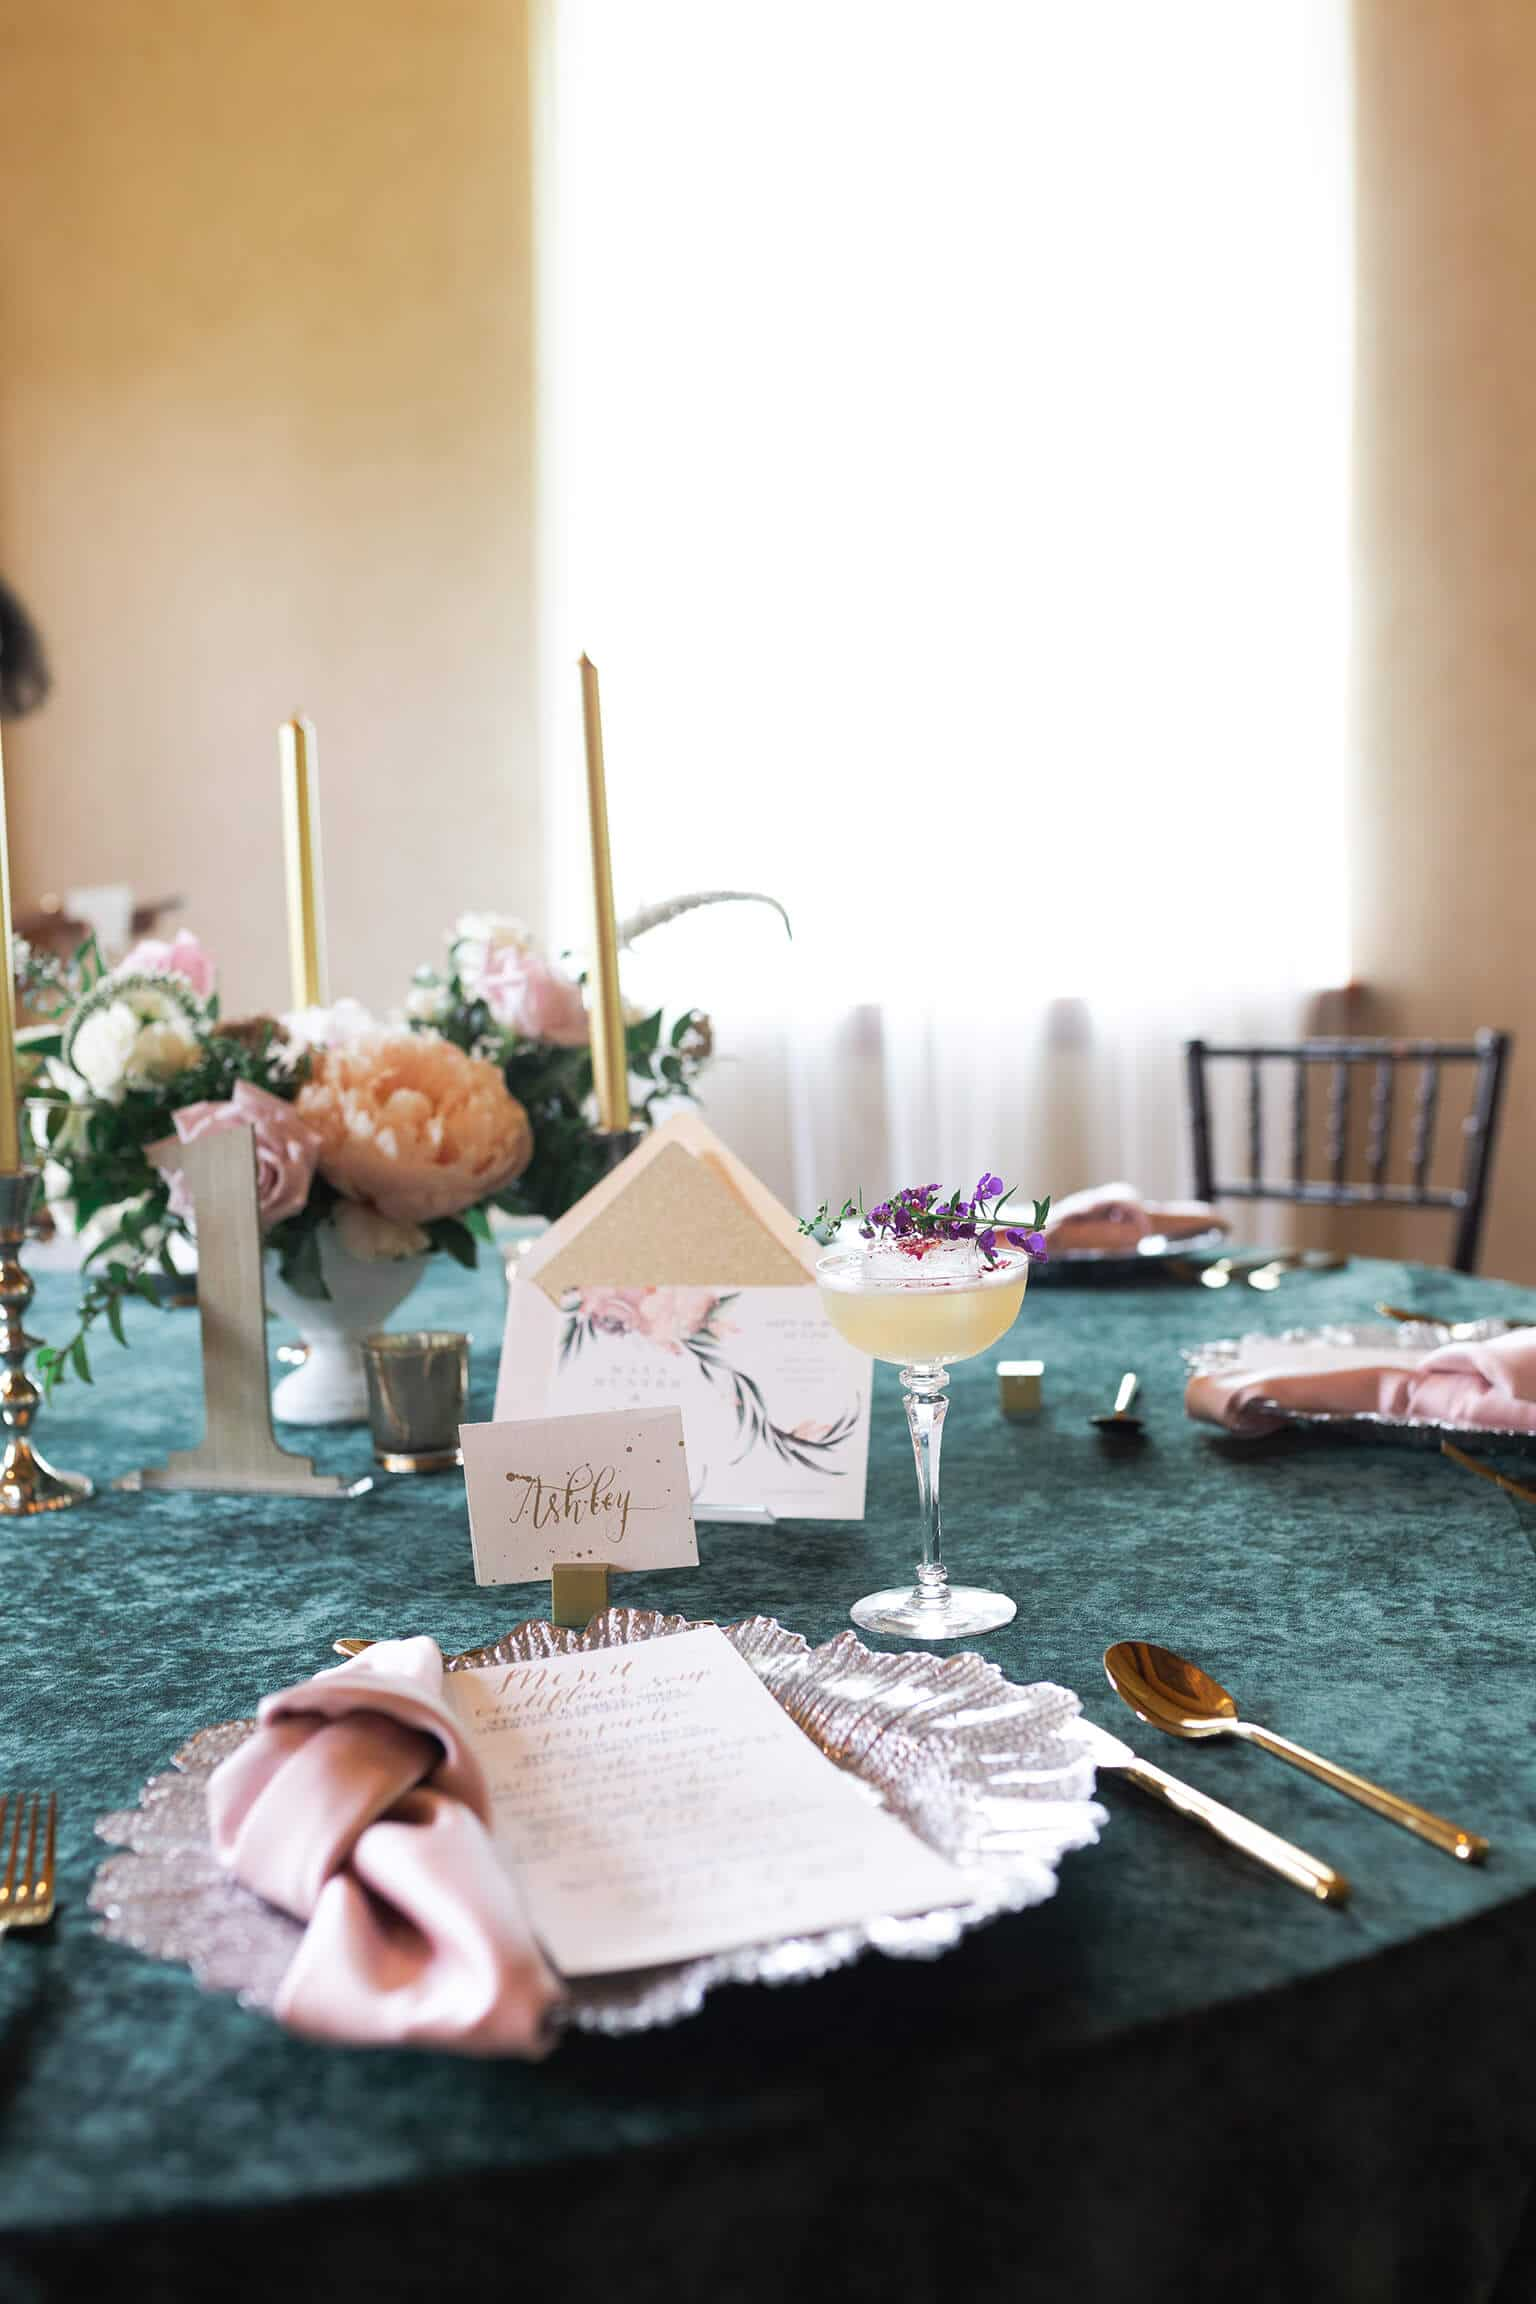 table setting with cocktails and a wedding invitation at a micro and intimate wedding at Balmorhea Event Venue in Houston Texas by Swish and Click Photography